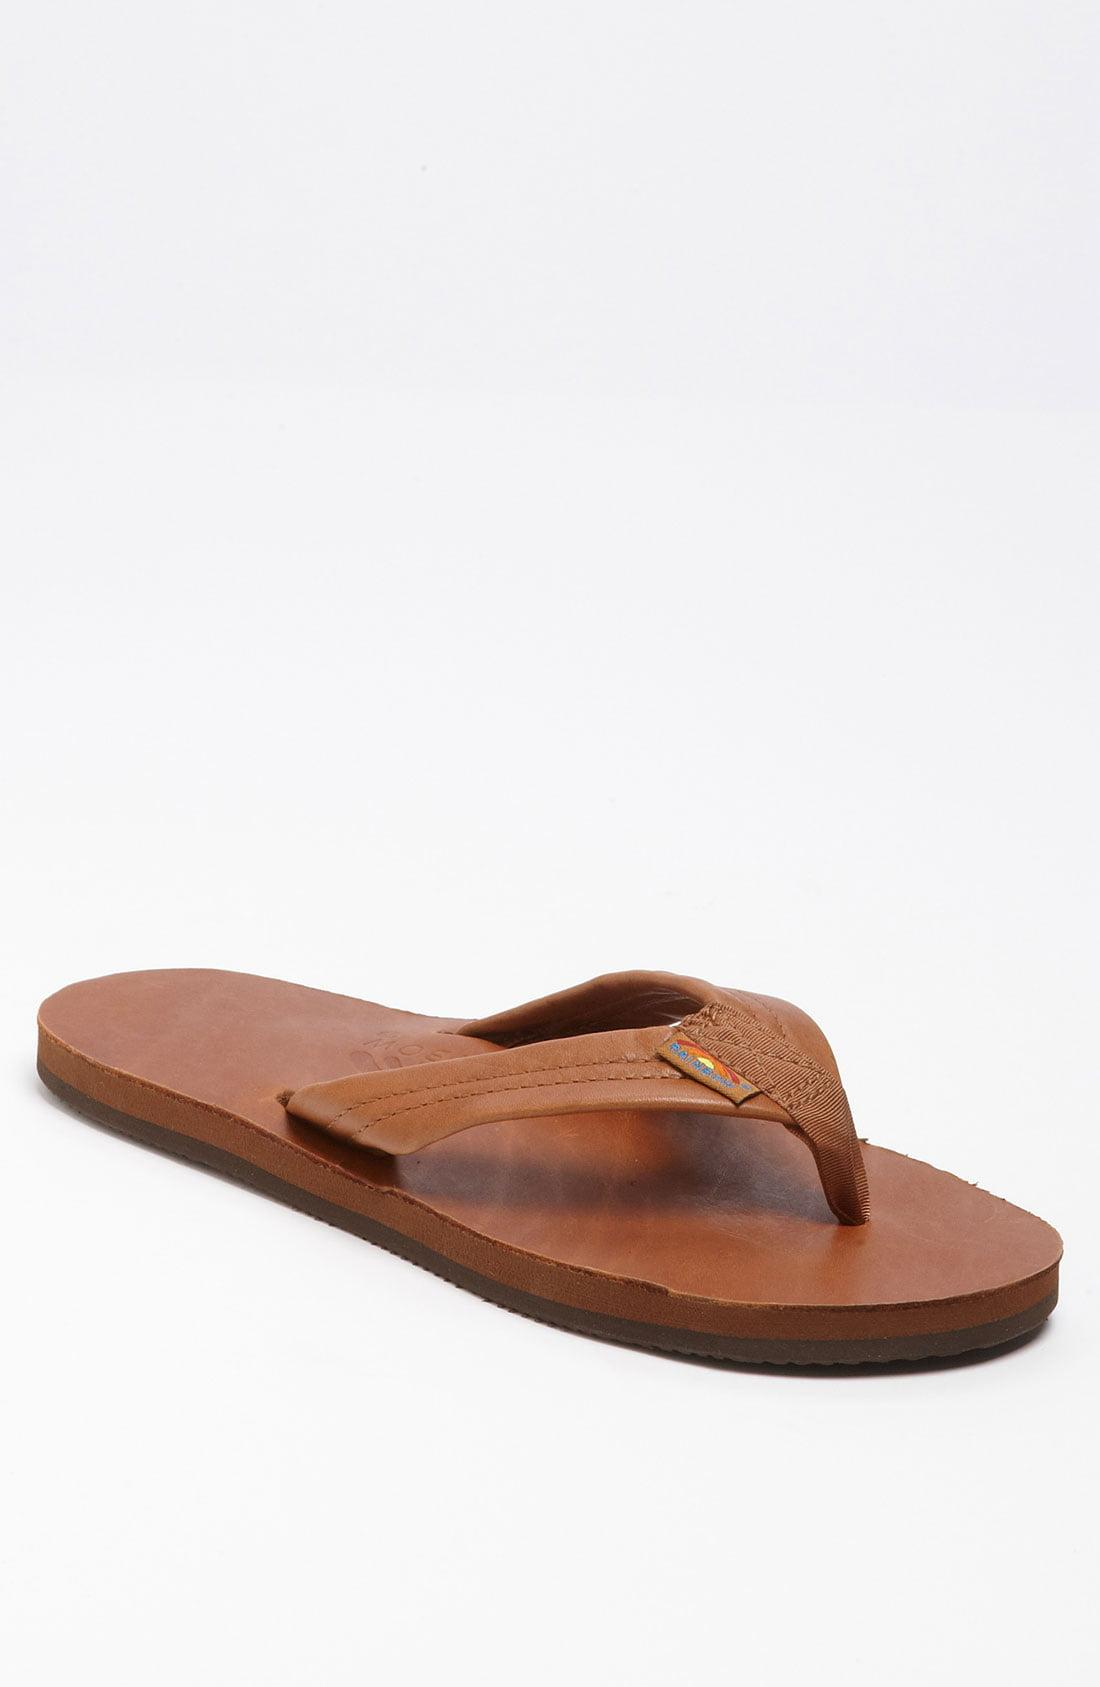 11c805778e97 Lyst - Rainbow Sandals Rainbow  301alts  Sandal in Brown for Men